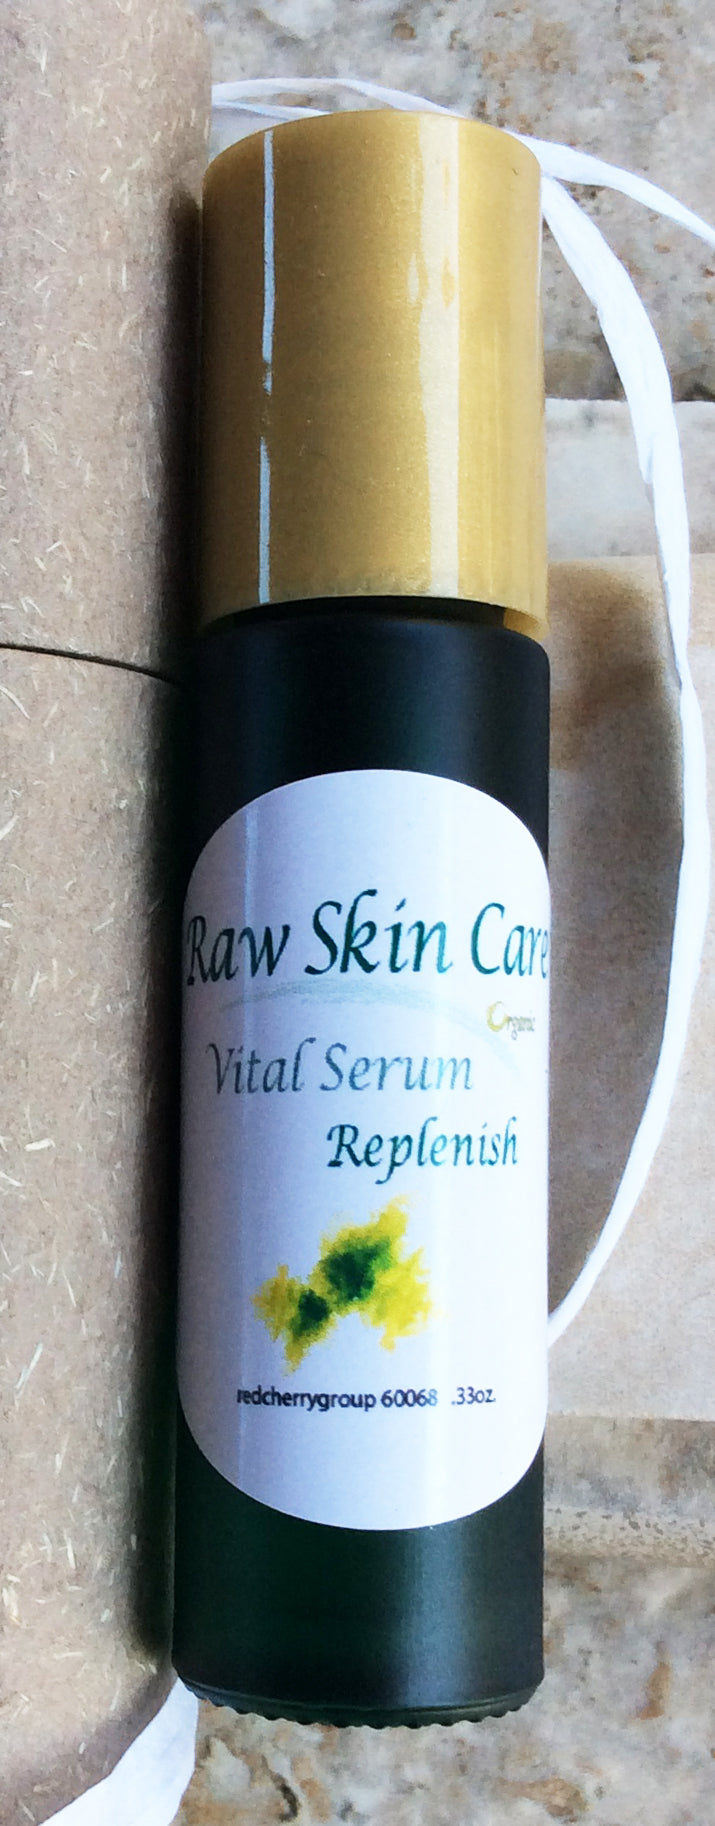 Replenish Vital .33oz. Serum for Depleated, Over Exfoliated and Exposed Skin ~Vitamn and Mineral Rplenishment